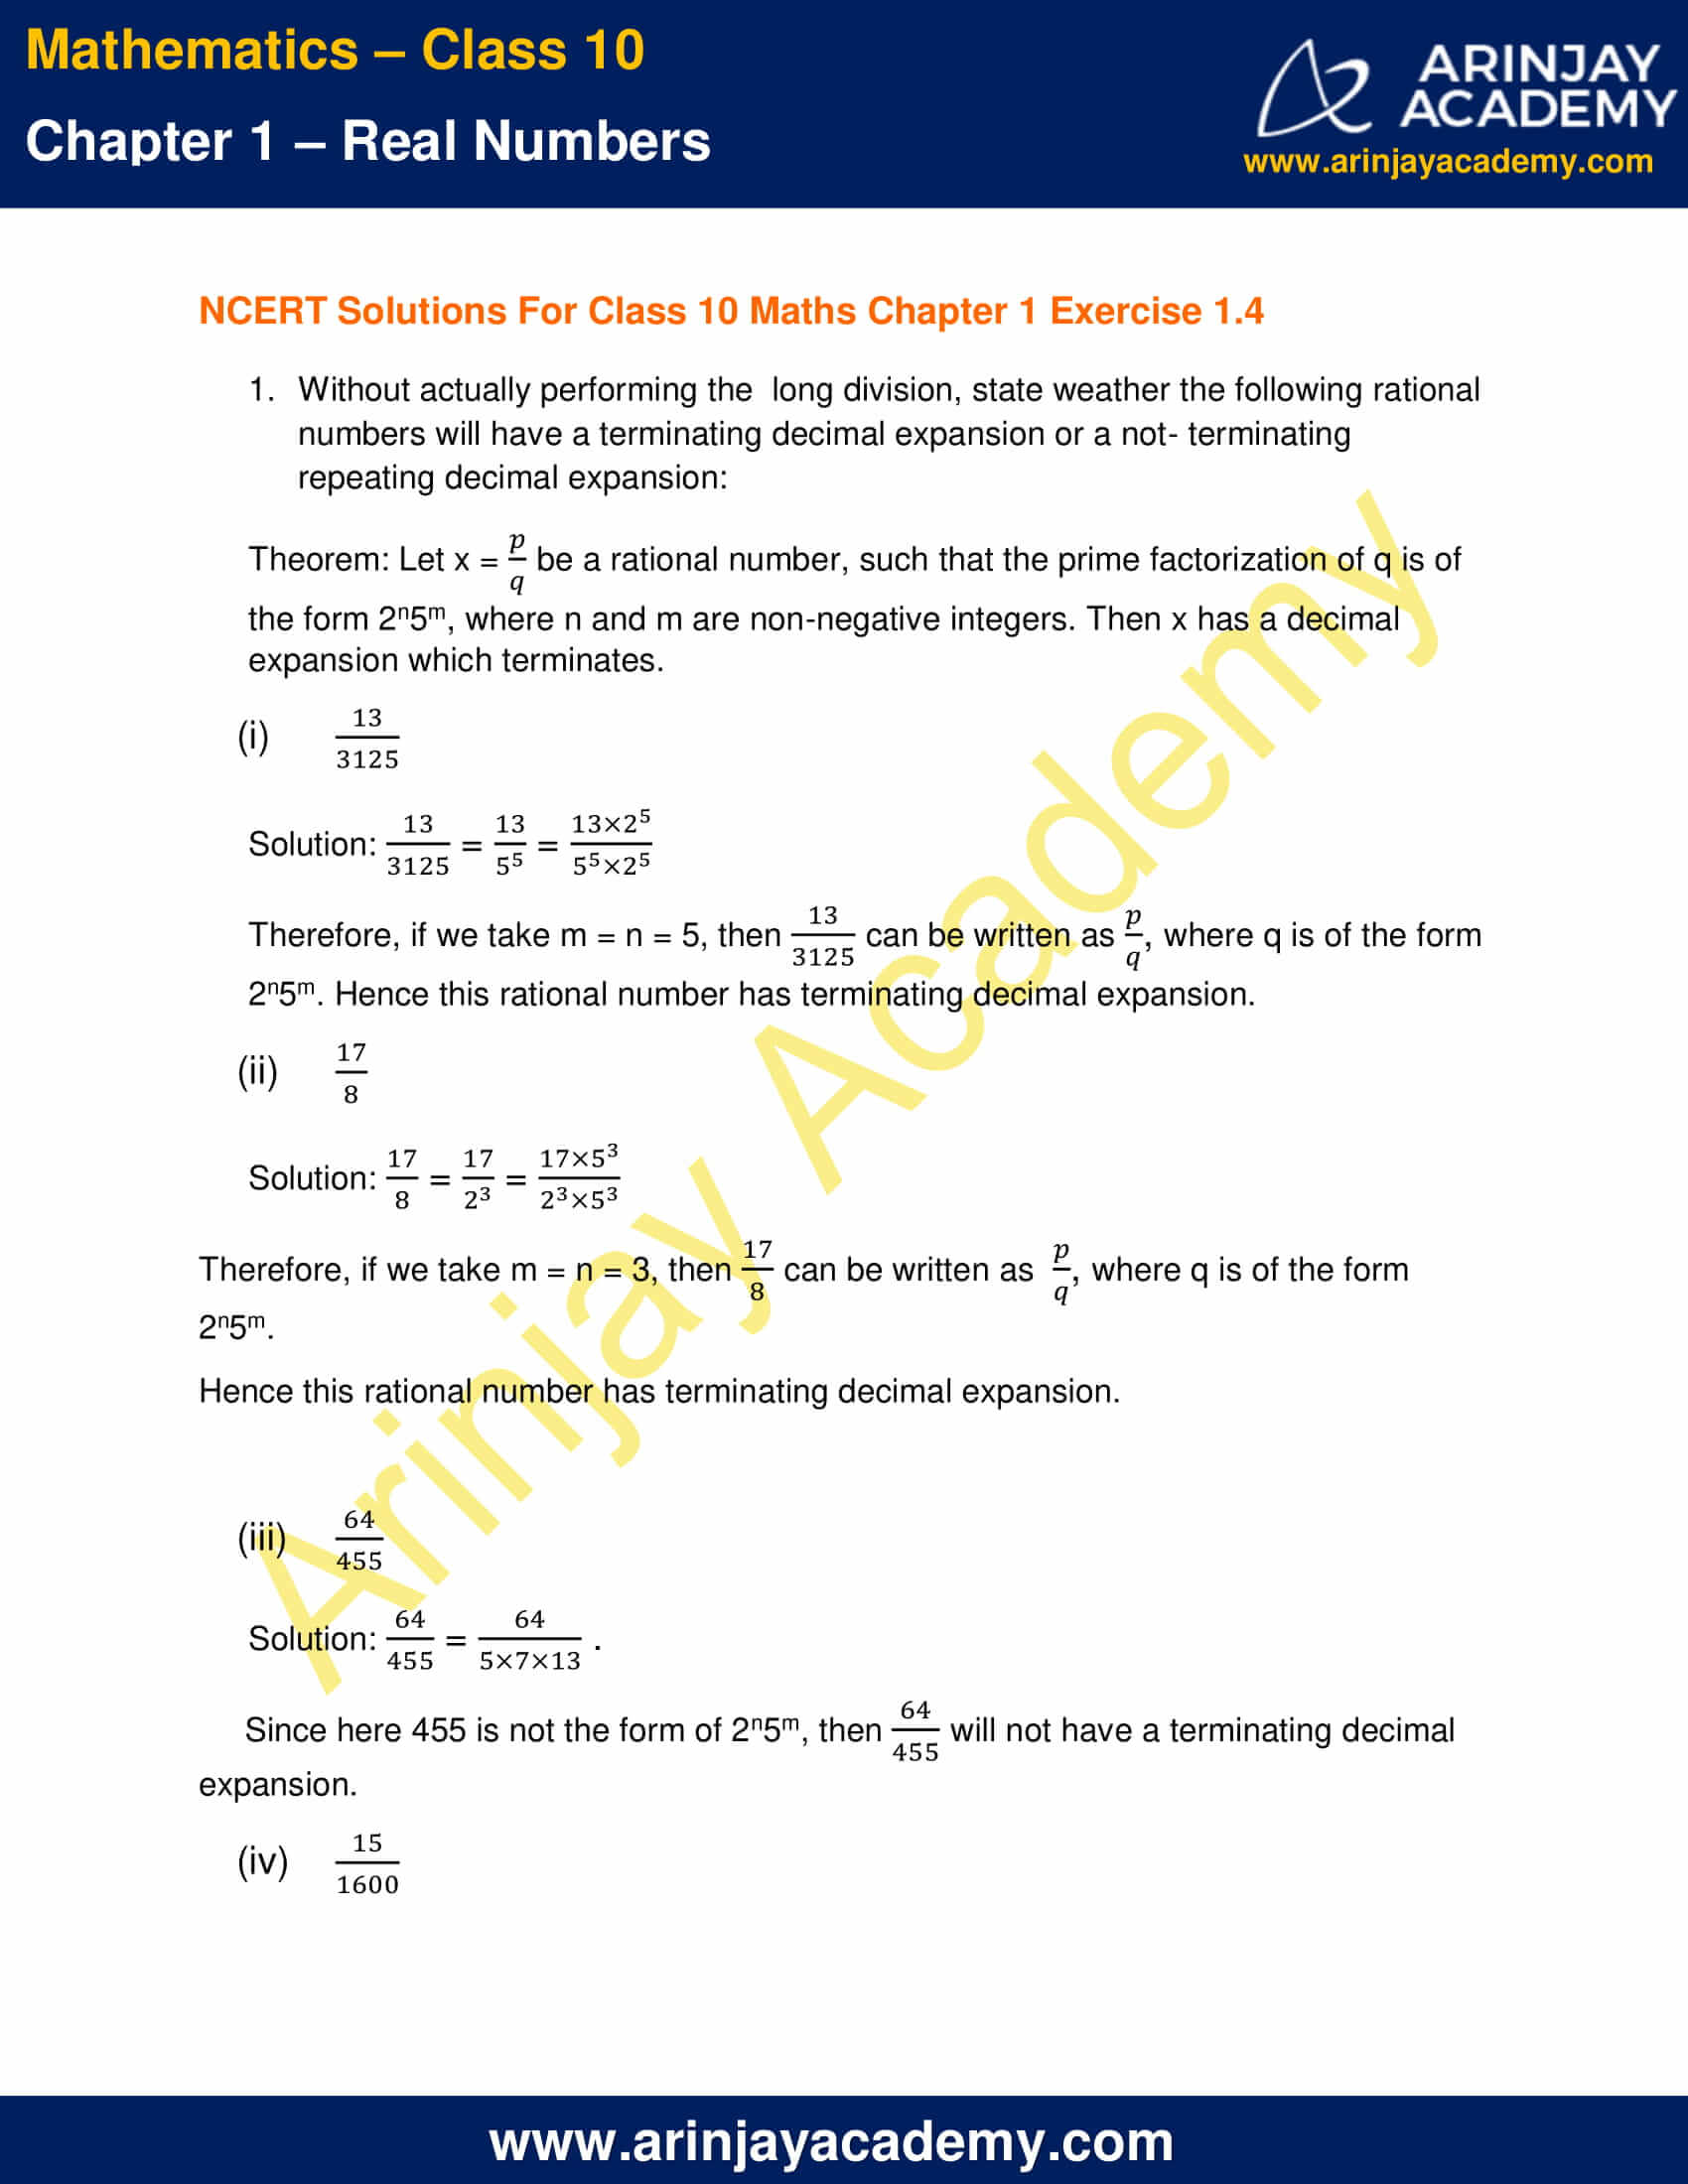 NCERT Solutions For Class 10 Maths Chapter 1 Exercise 1.4 part 1